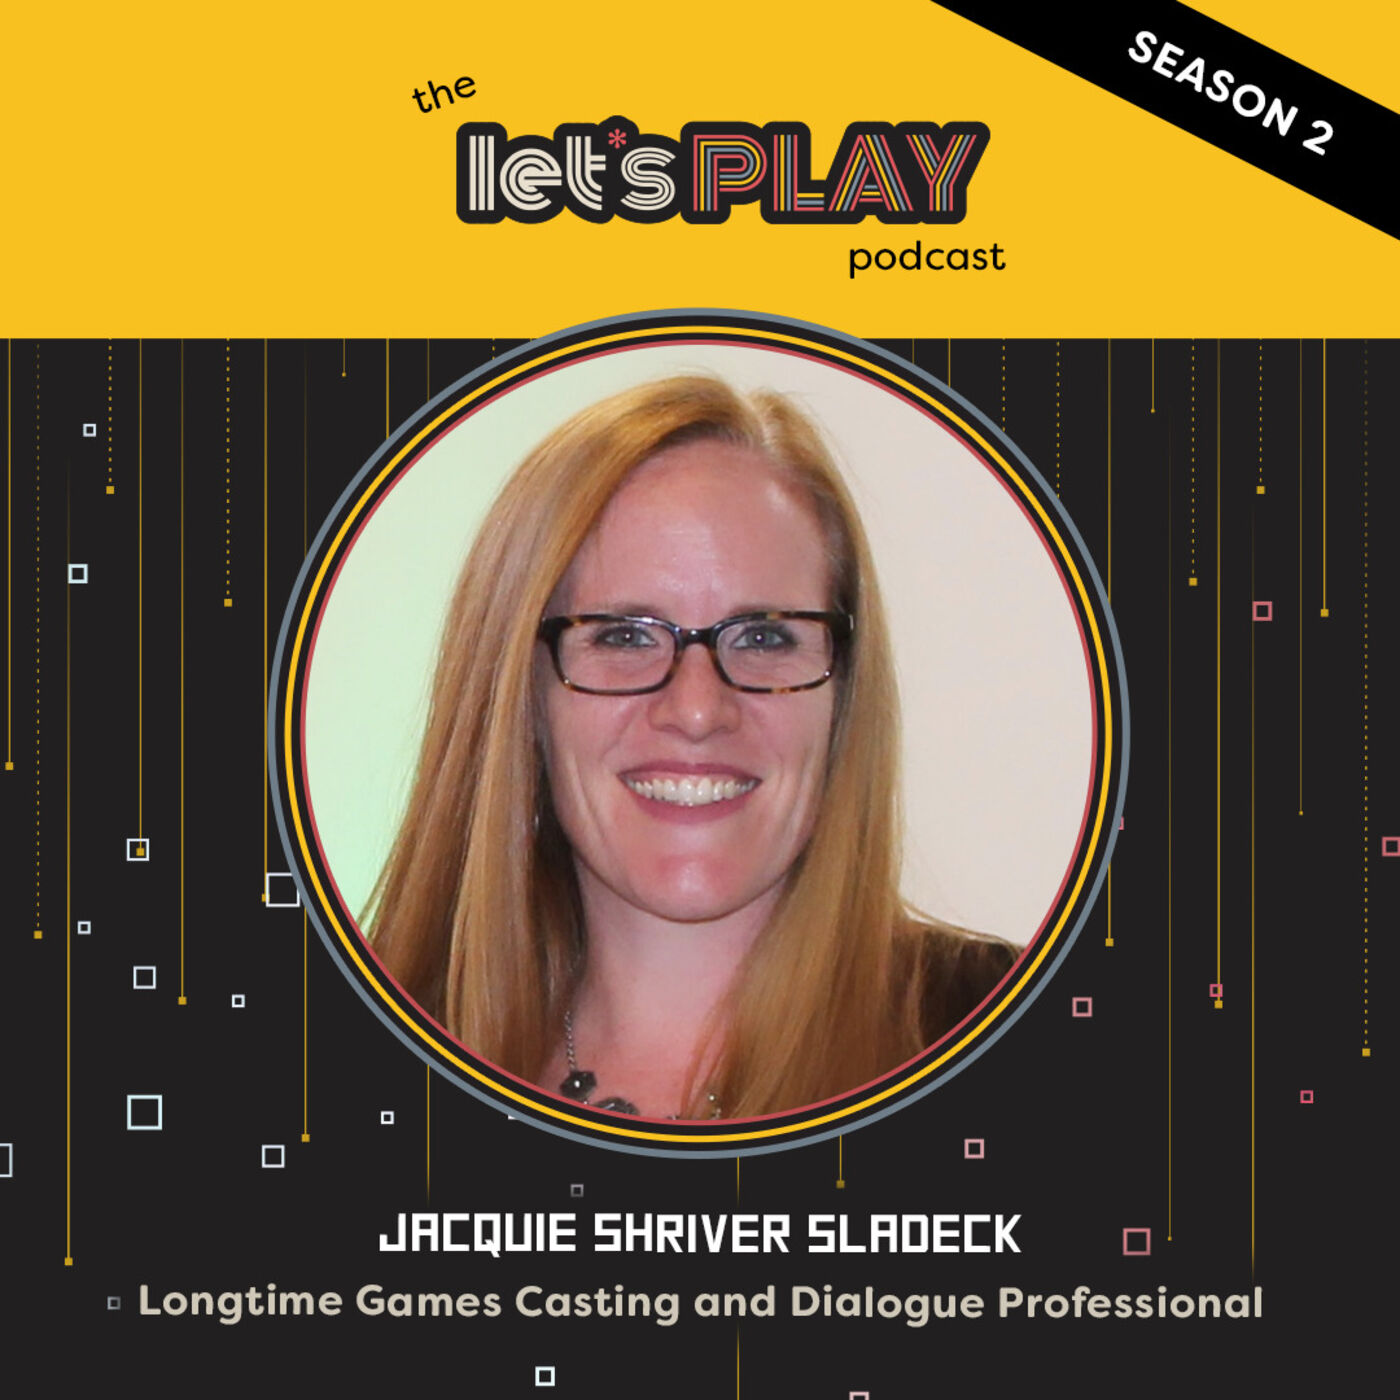 S2 #9: Jacquie Shriver Sladeck (Longtime Games Casting and Dialogue Professional)